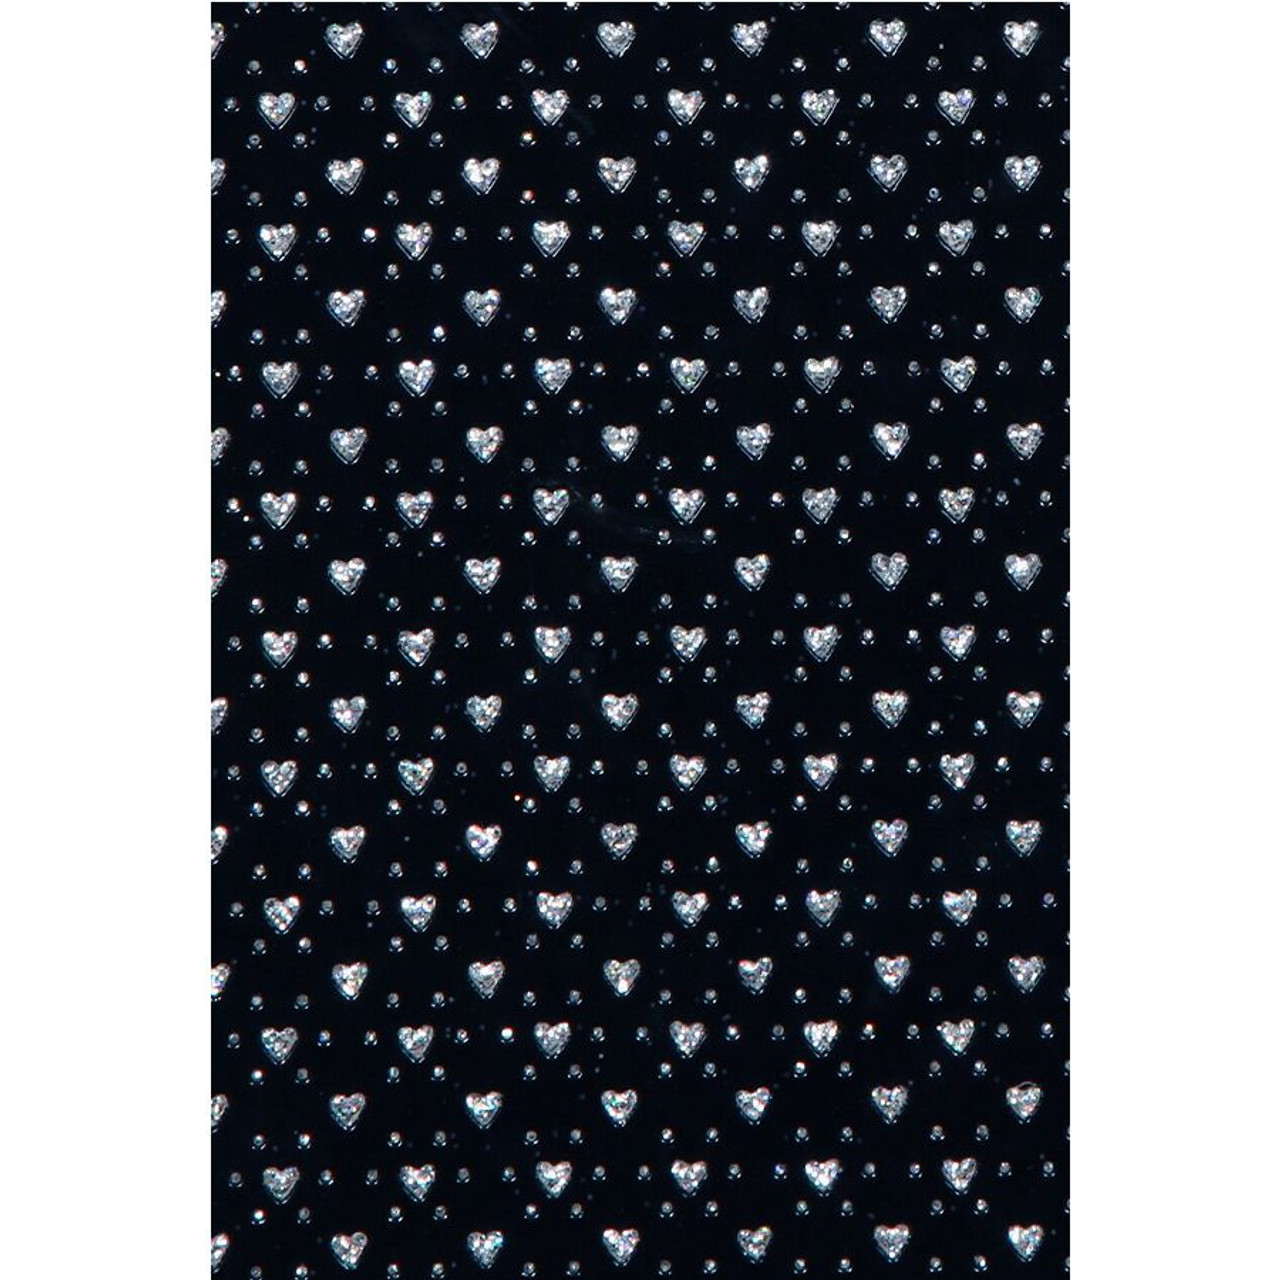 3 Panel Black Wood Screen Room Divider with Heart Shape Glitter